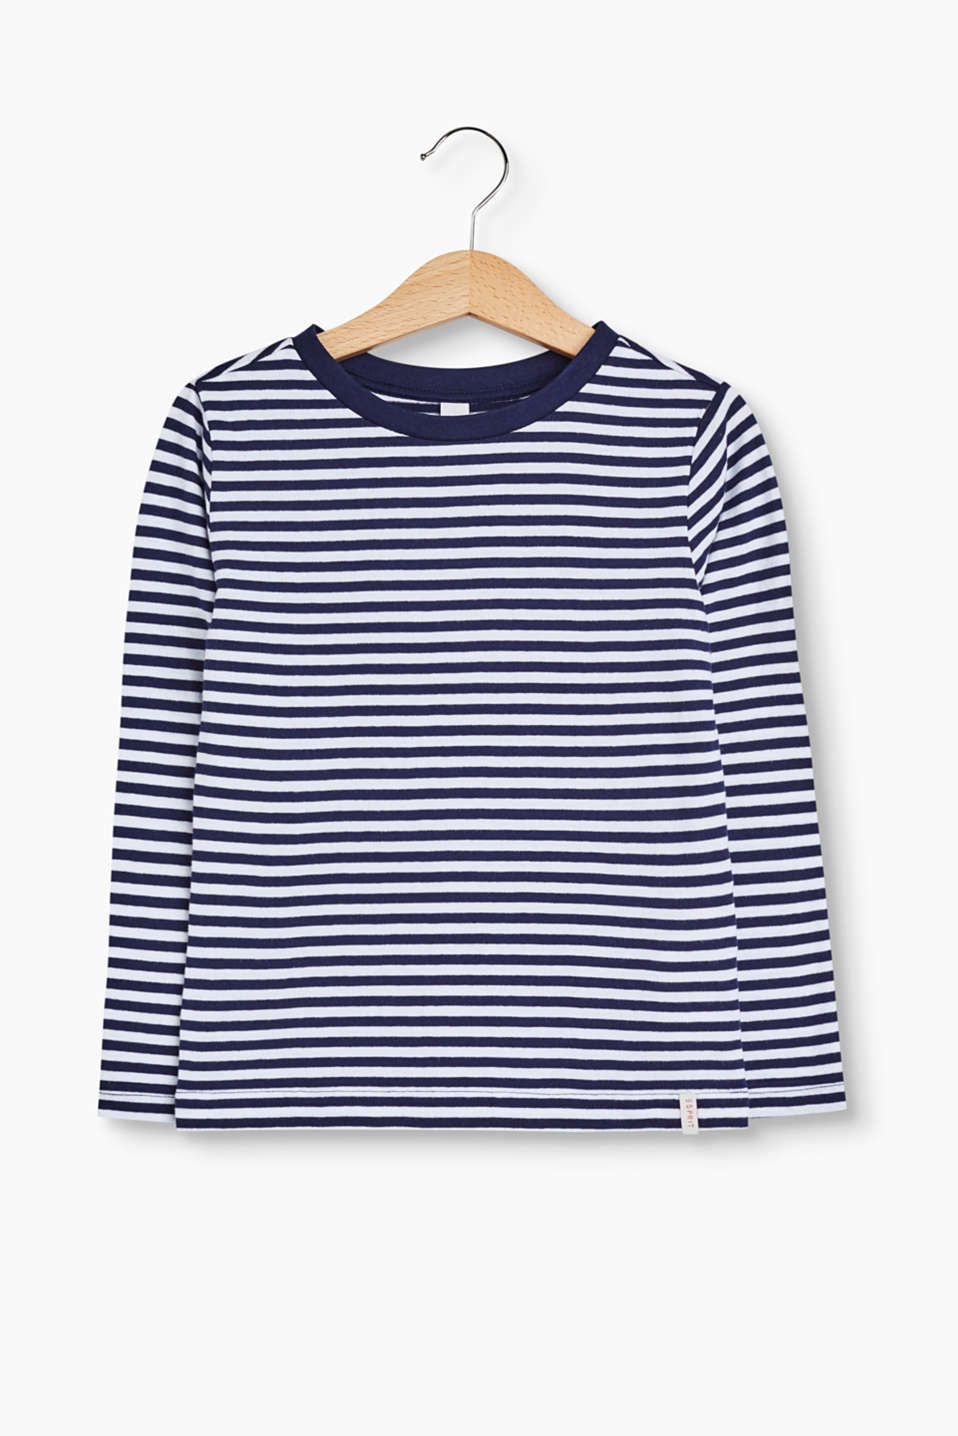 With a stripe pattern: long sleeve top made of soft cotton jersey